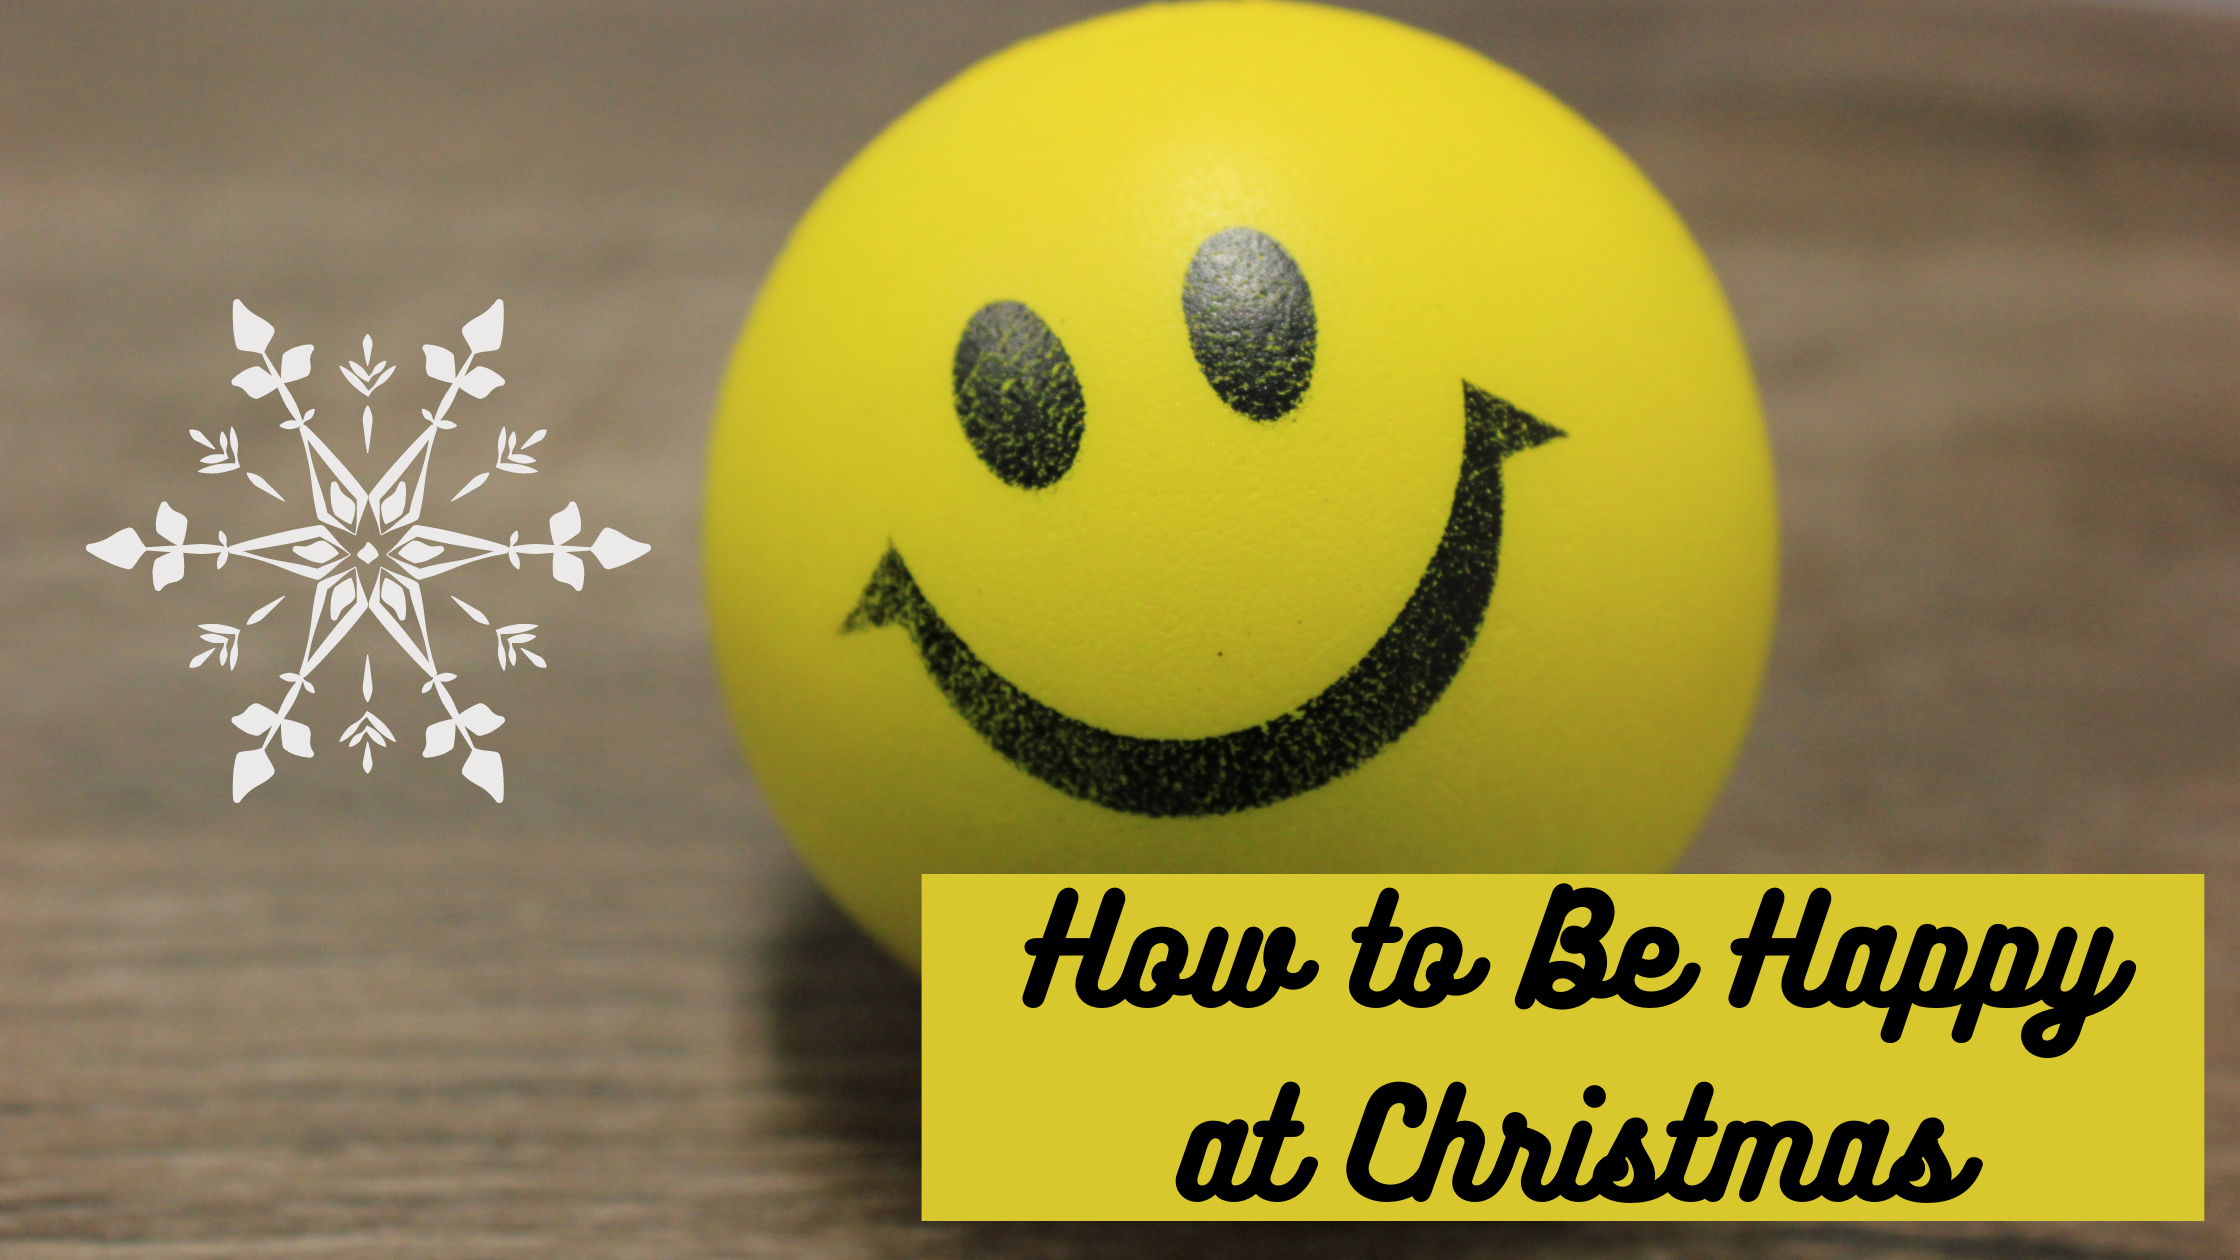 How to Be Happy at Christmas